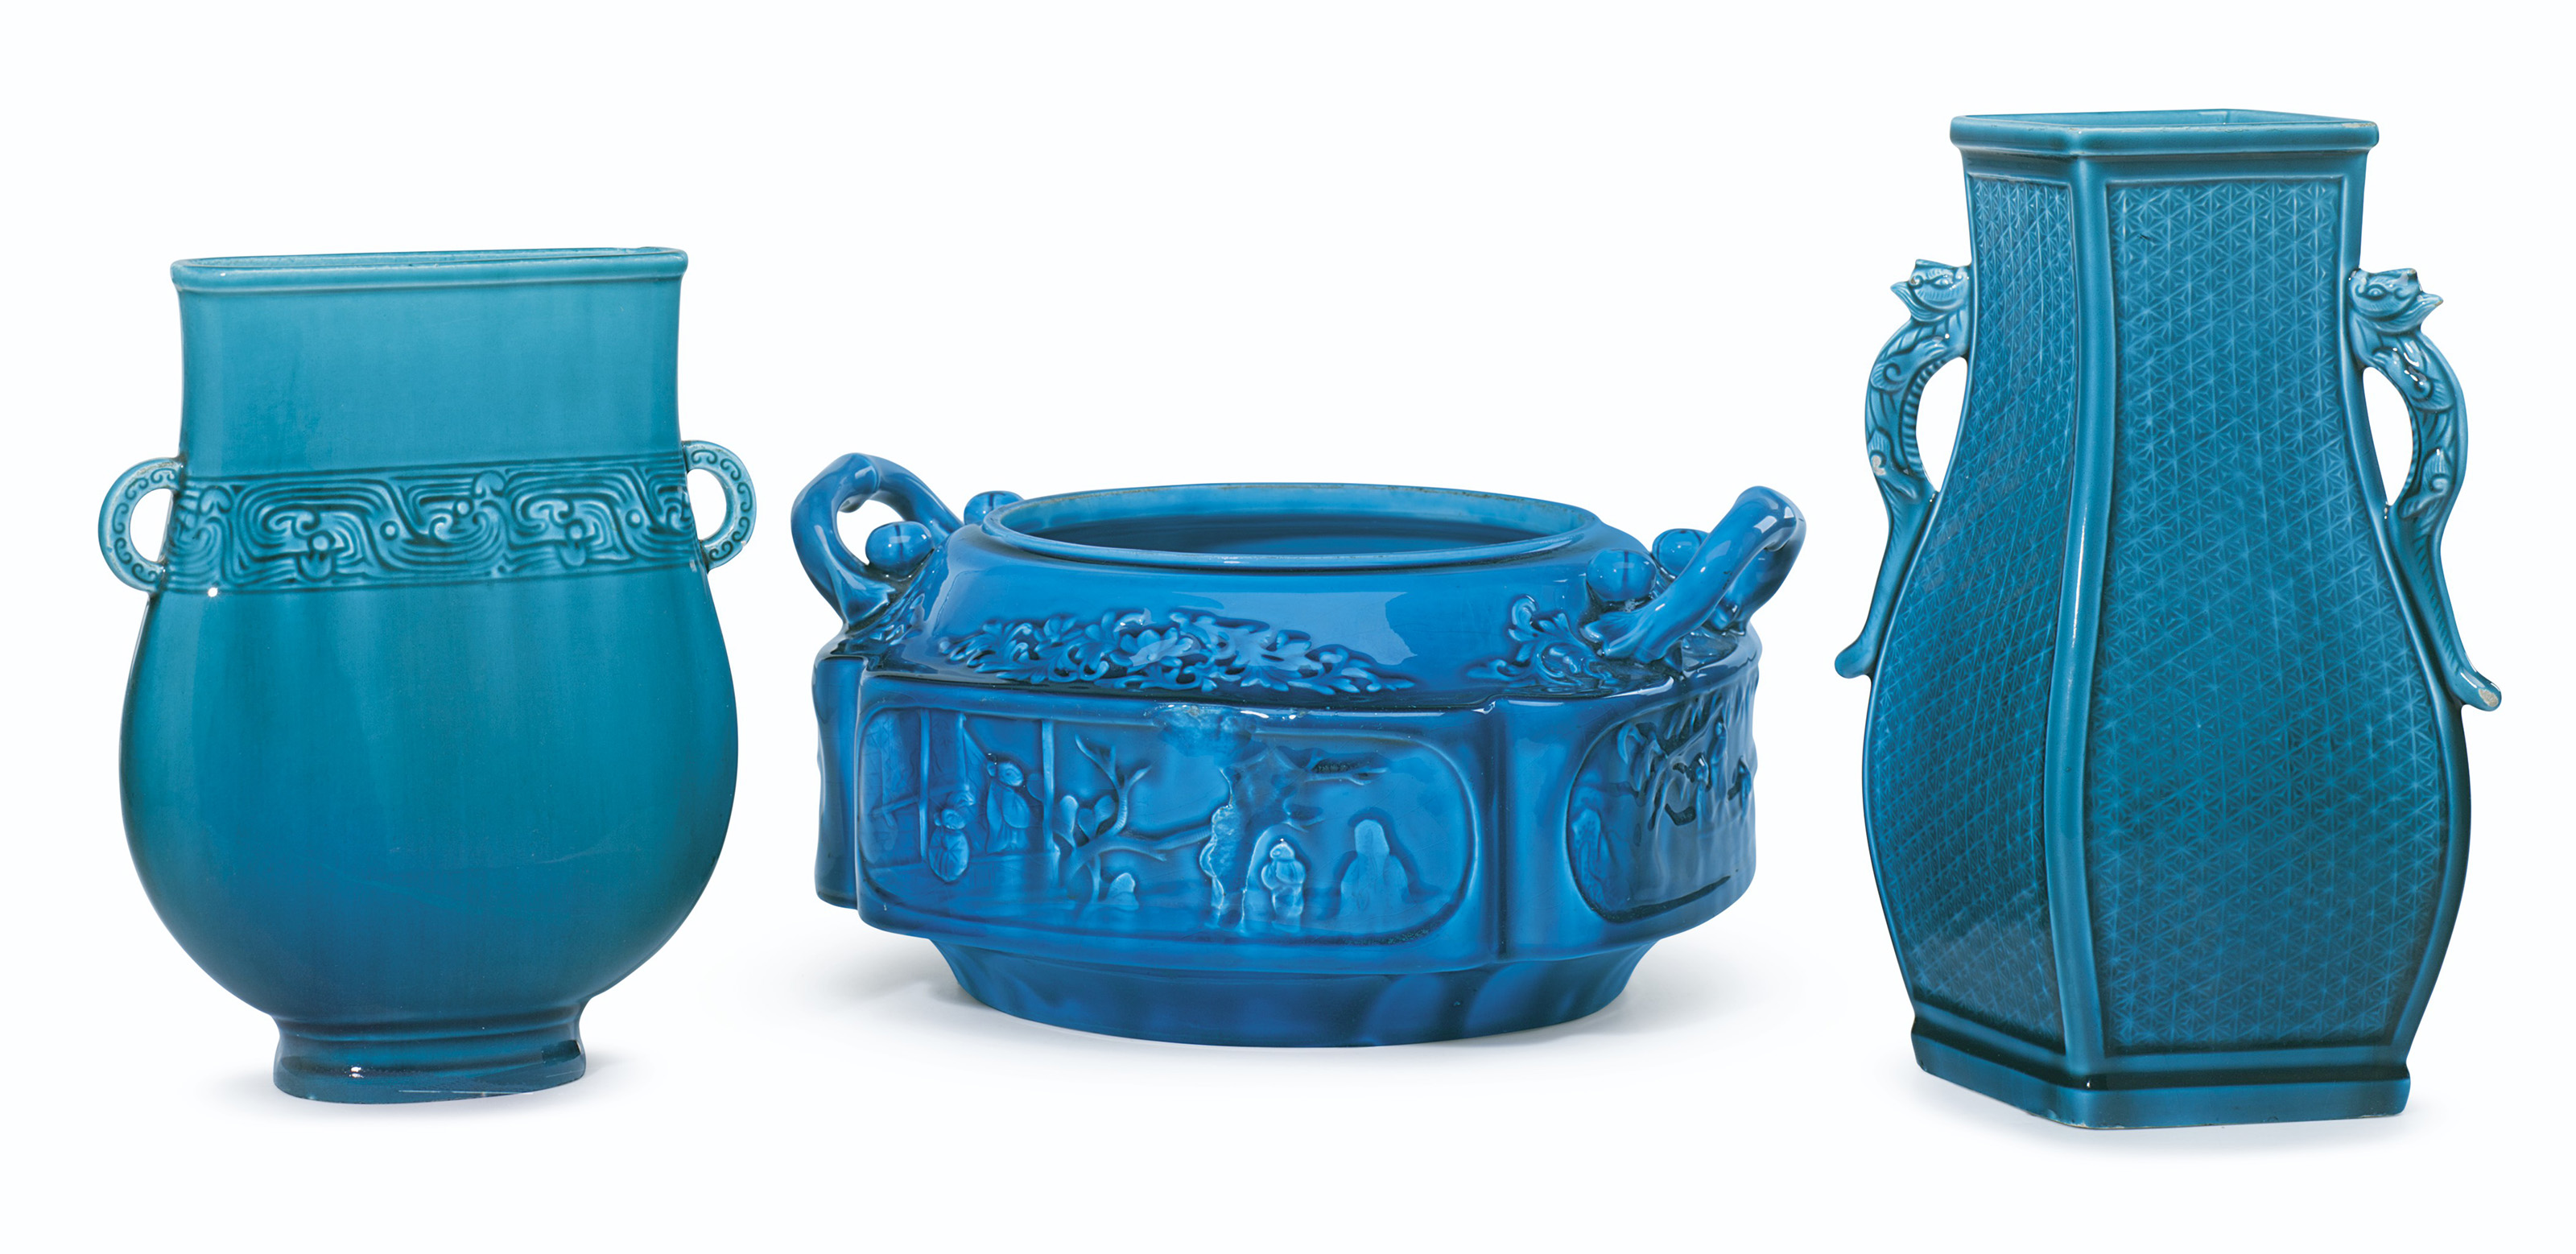 TWO THEODORE DECK FAIENCE 'PERSIAN BLUE' VASES